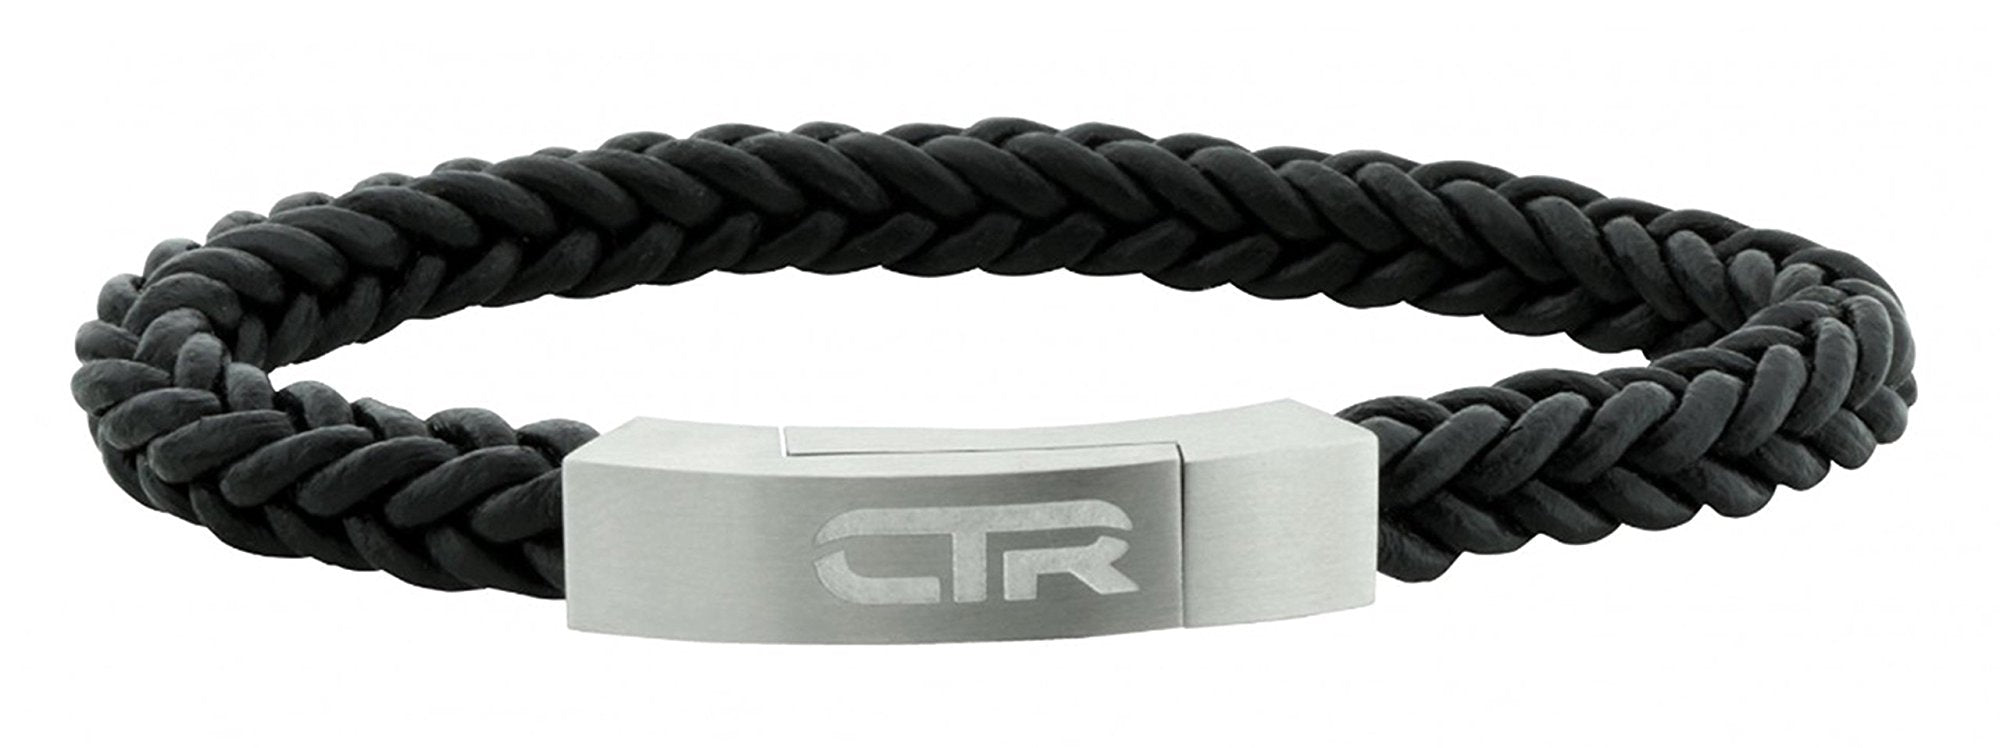 L3 Leather & Stainless Steel CTR bracelet with Magnetic Clasp Surface